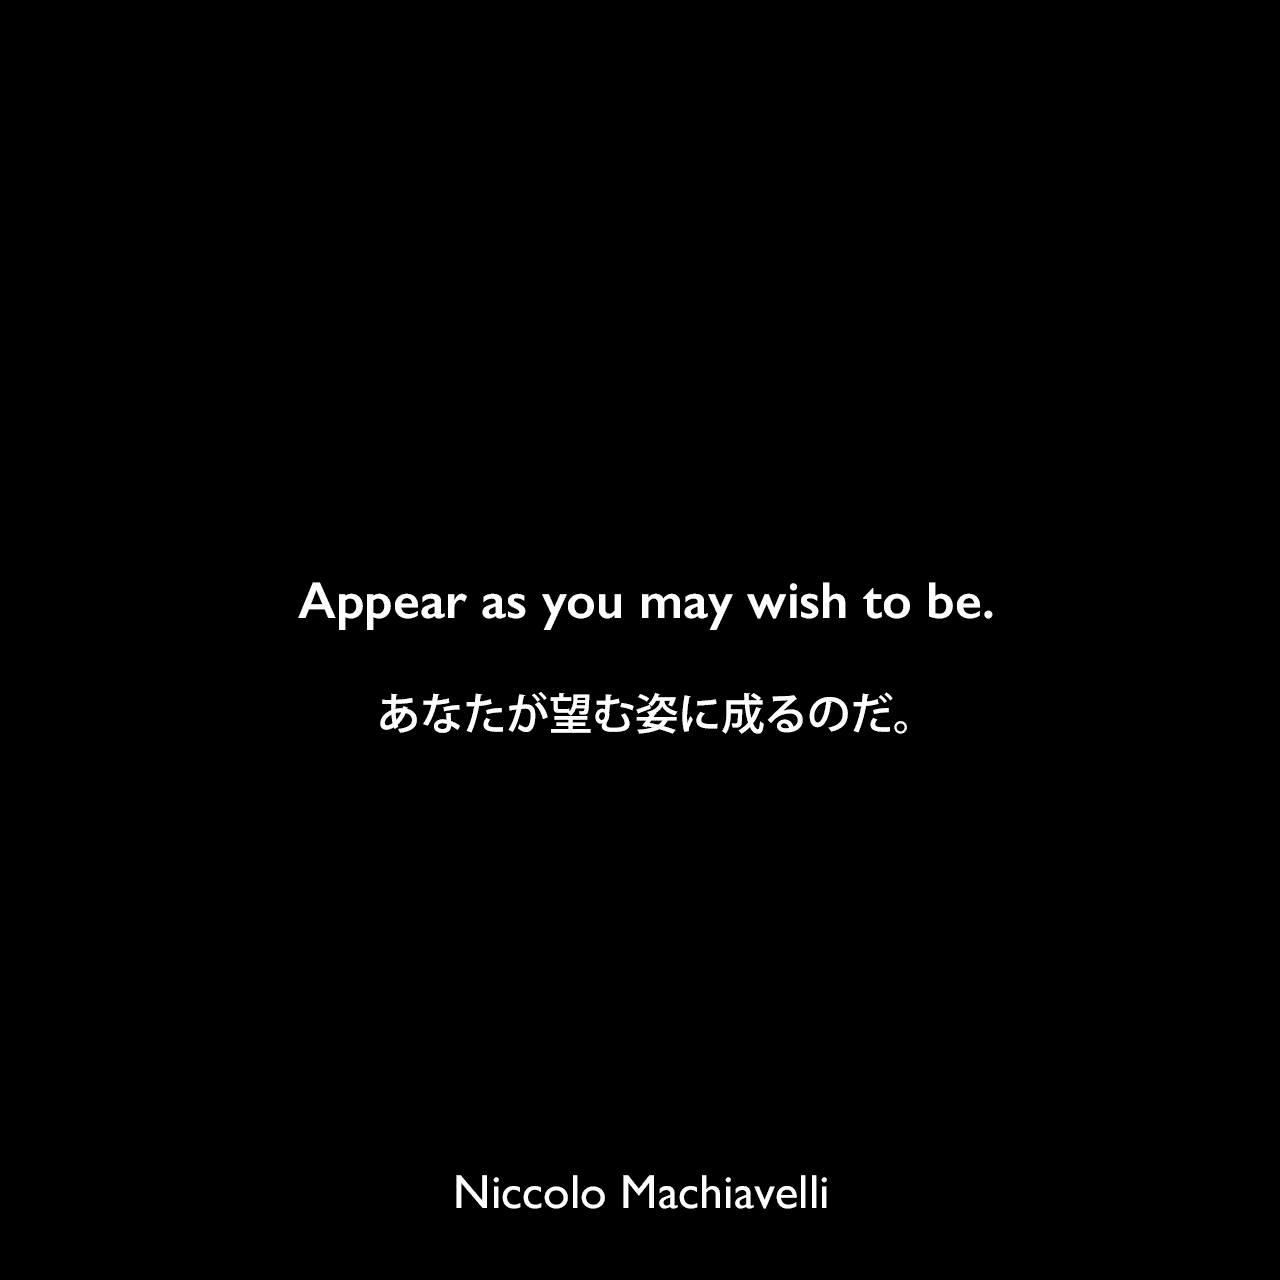 Appear as you may wish to be.あなたが望む姿に成るのだ。Niccolo Machiavelli